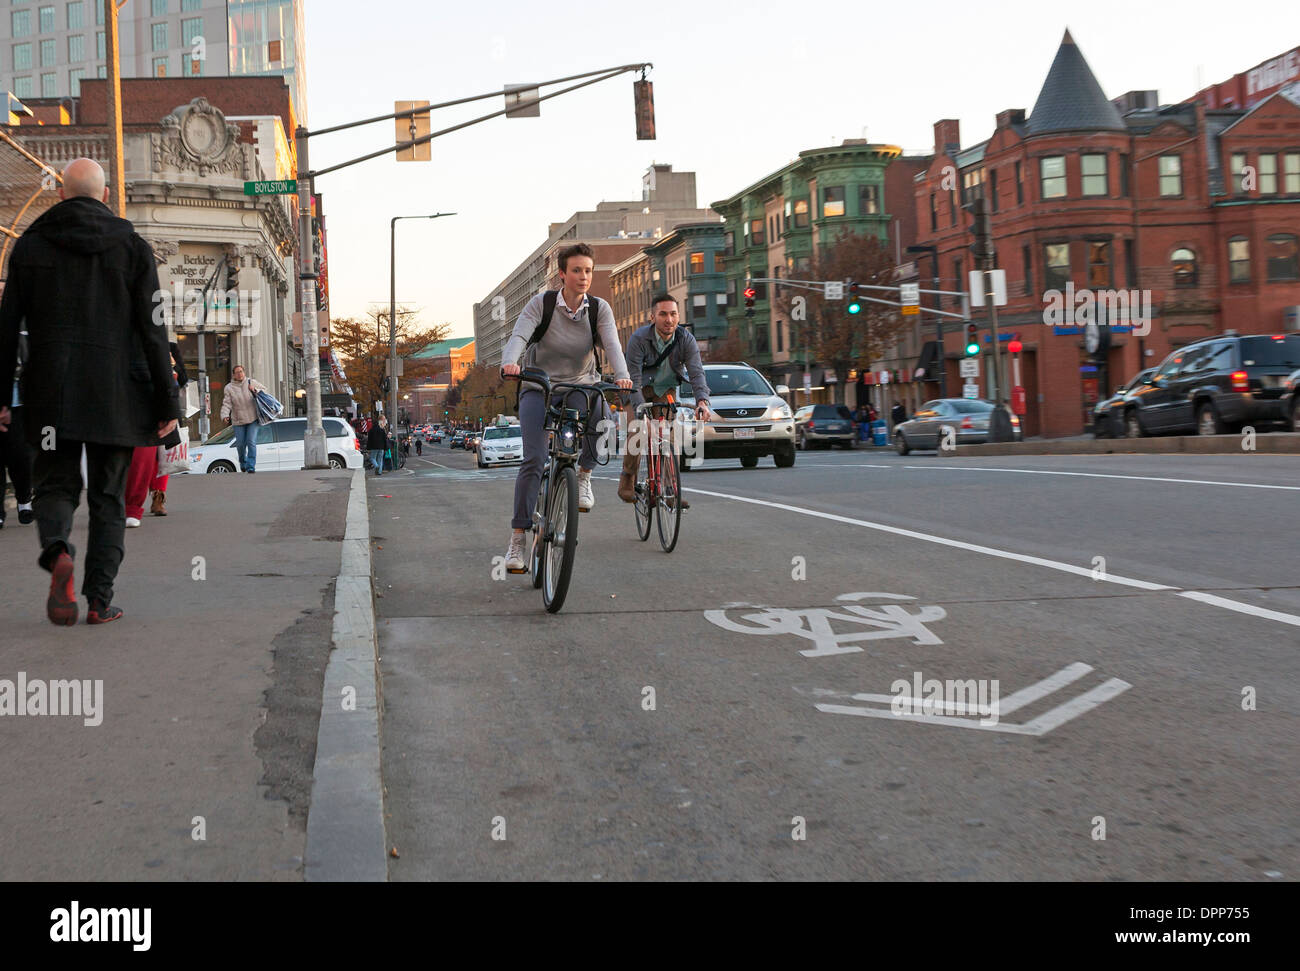 A man and woman ride their bicycles in a bike lane in Boston. - Stock Image